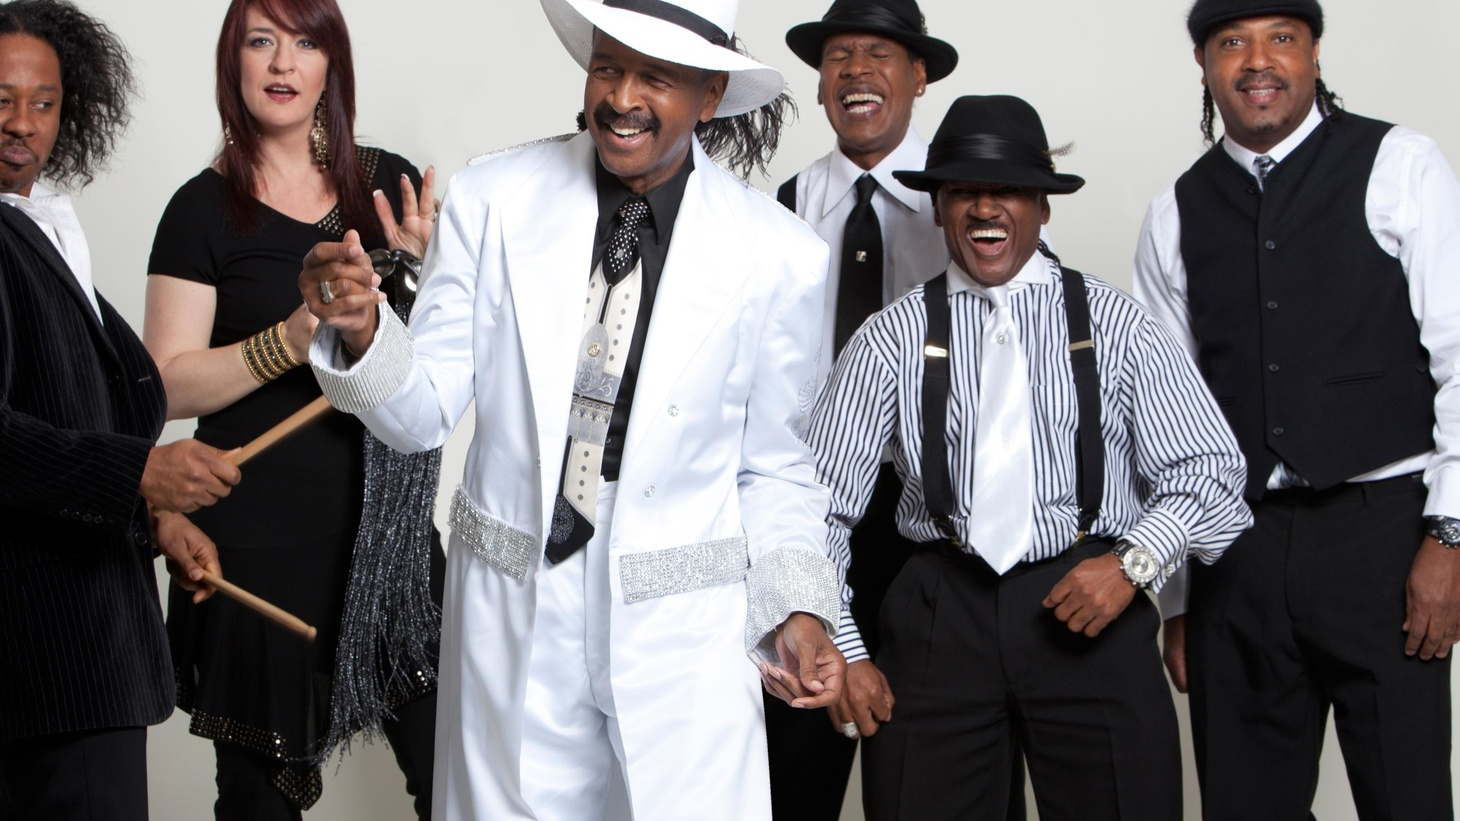 Larry Graham famously mastered the slap-and-pluck bass technique that  defined the funk sound of the 60's and 70's. He laid a solid foundation  for many, including...